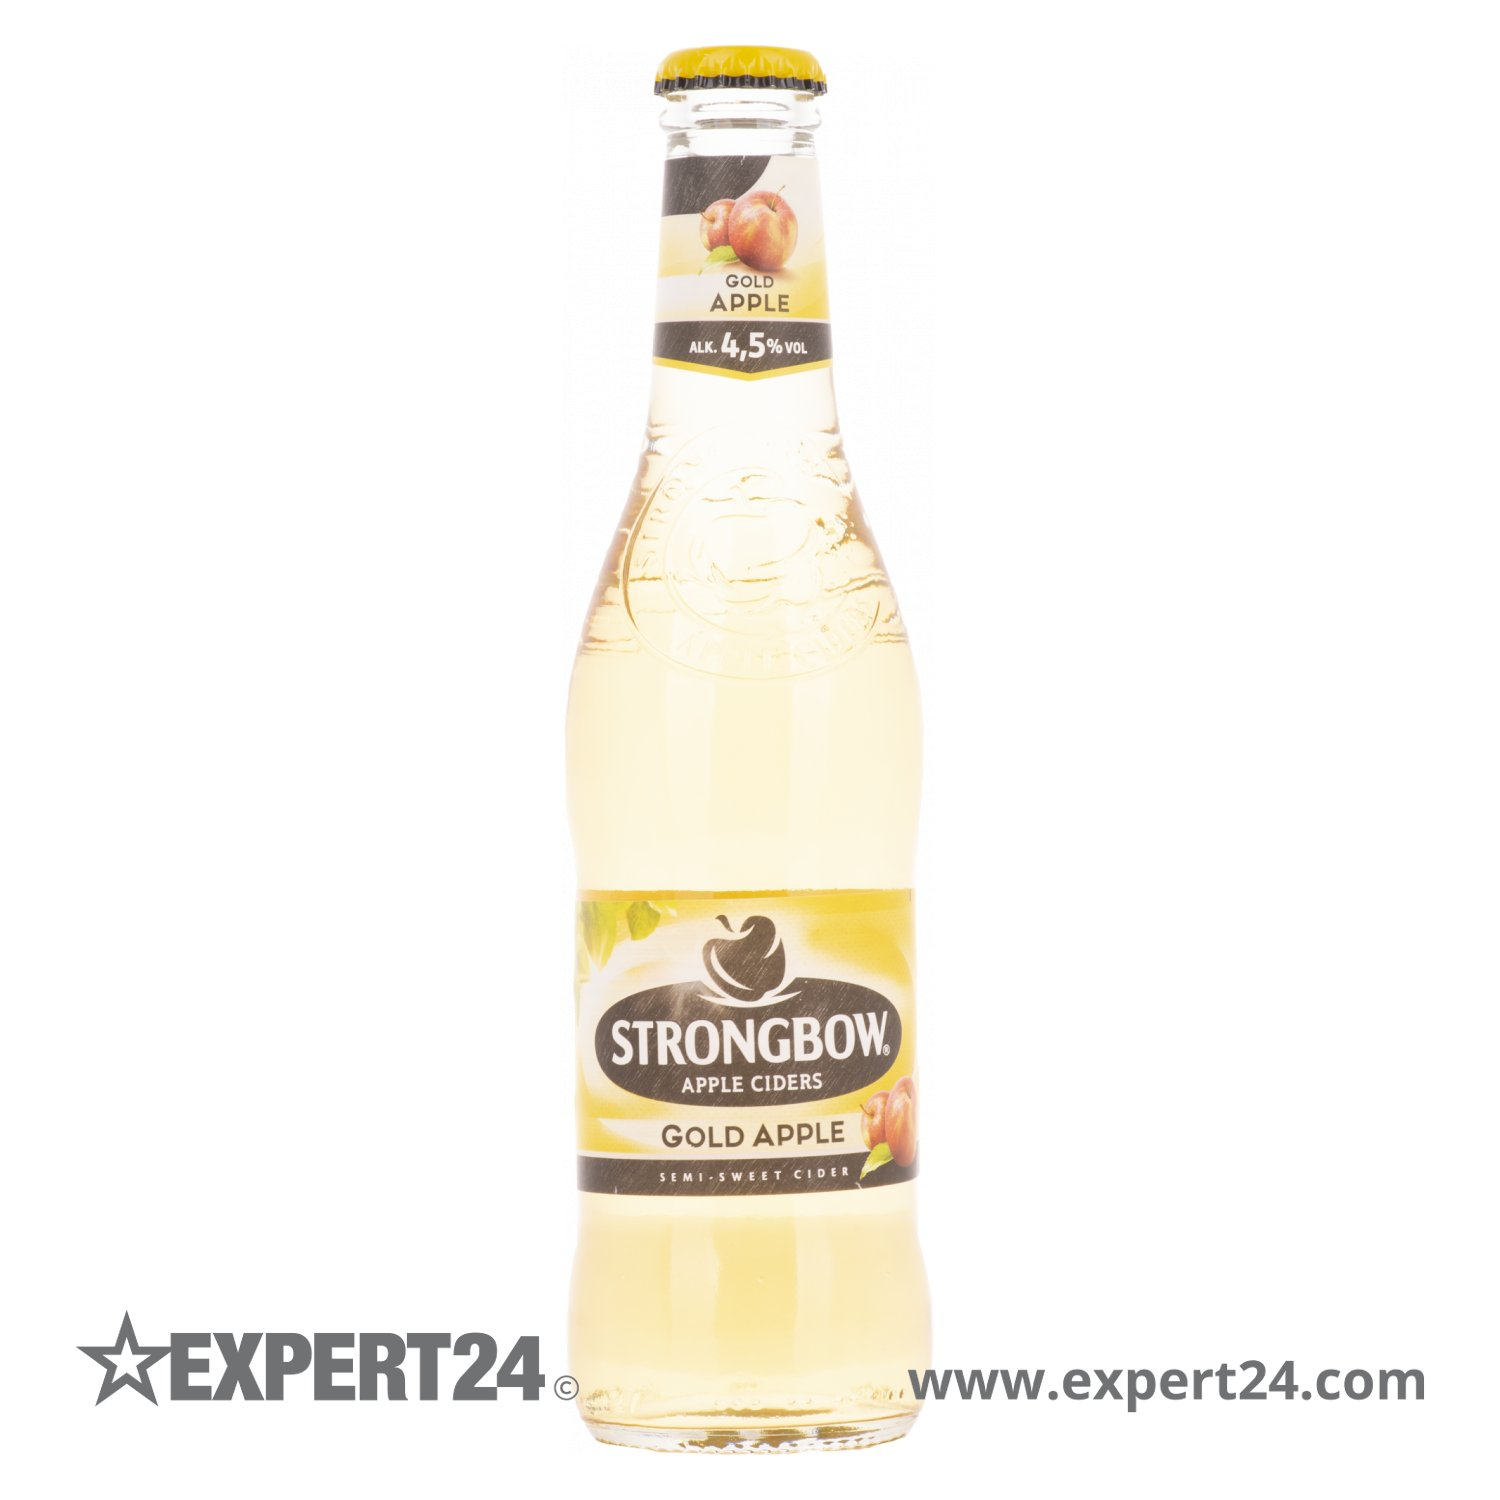 Cider Getränk Strongbow Cider Gold Apple 4,5% Vol. 6x4x0,33l